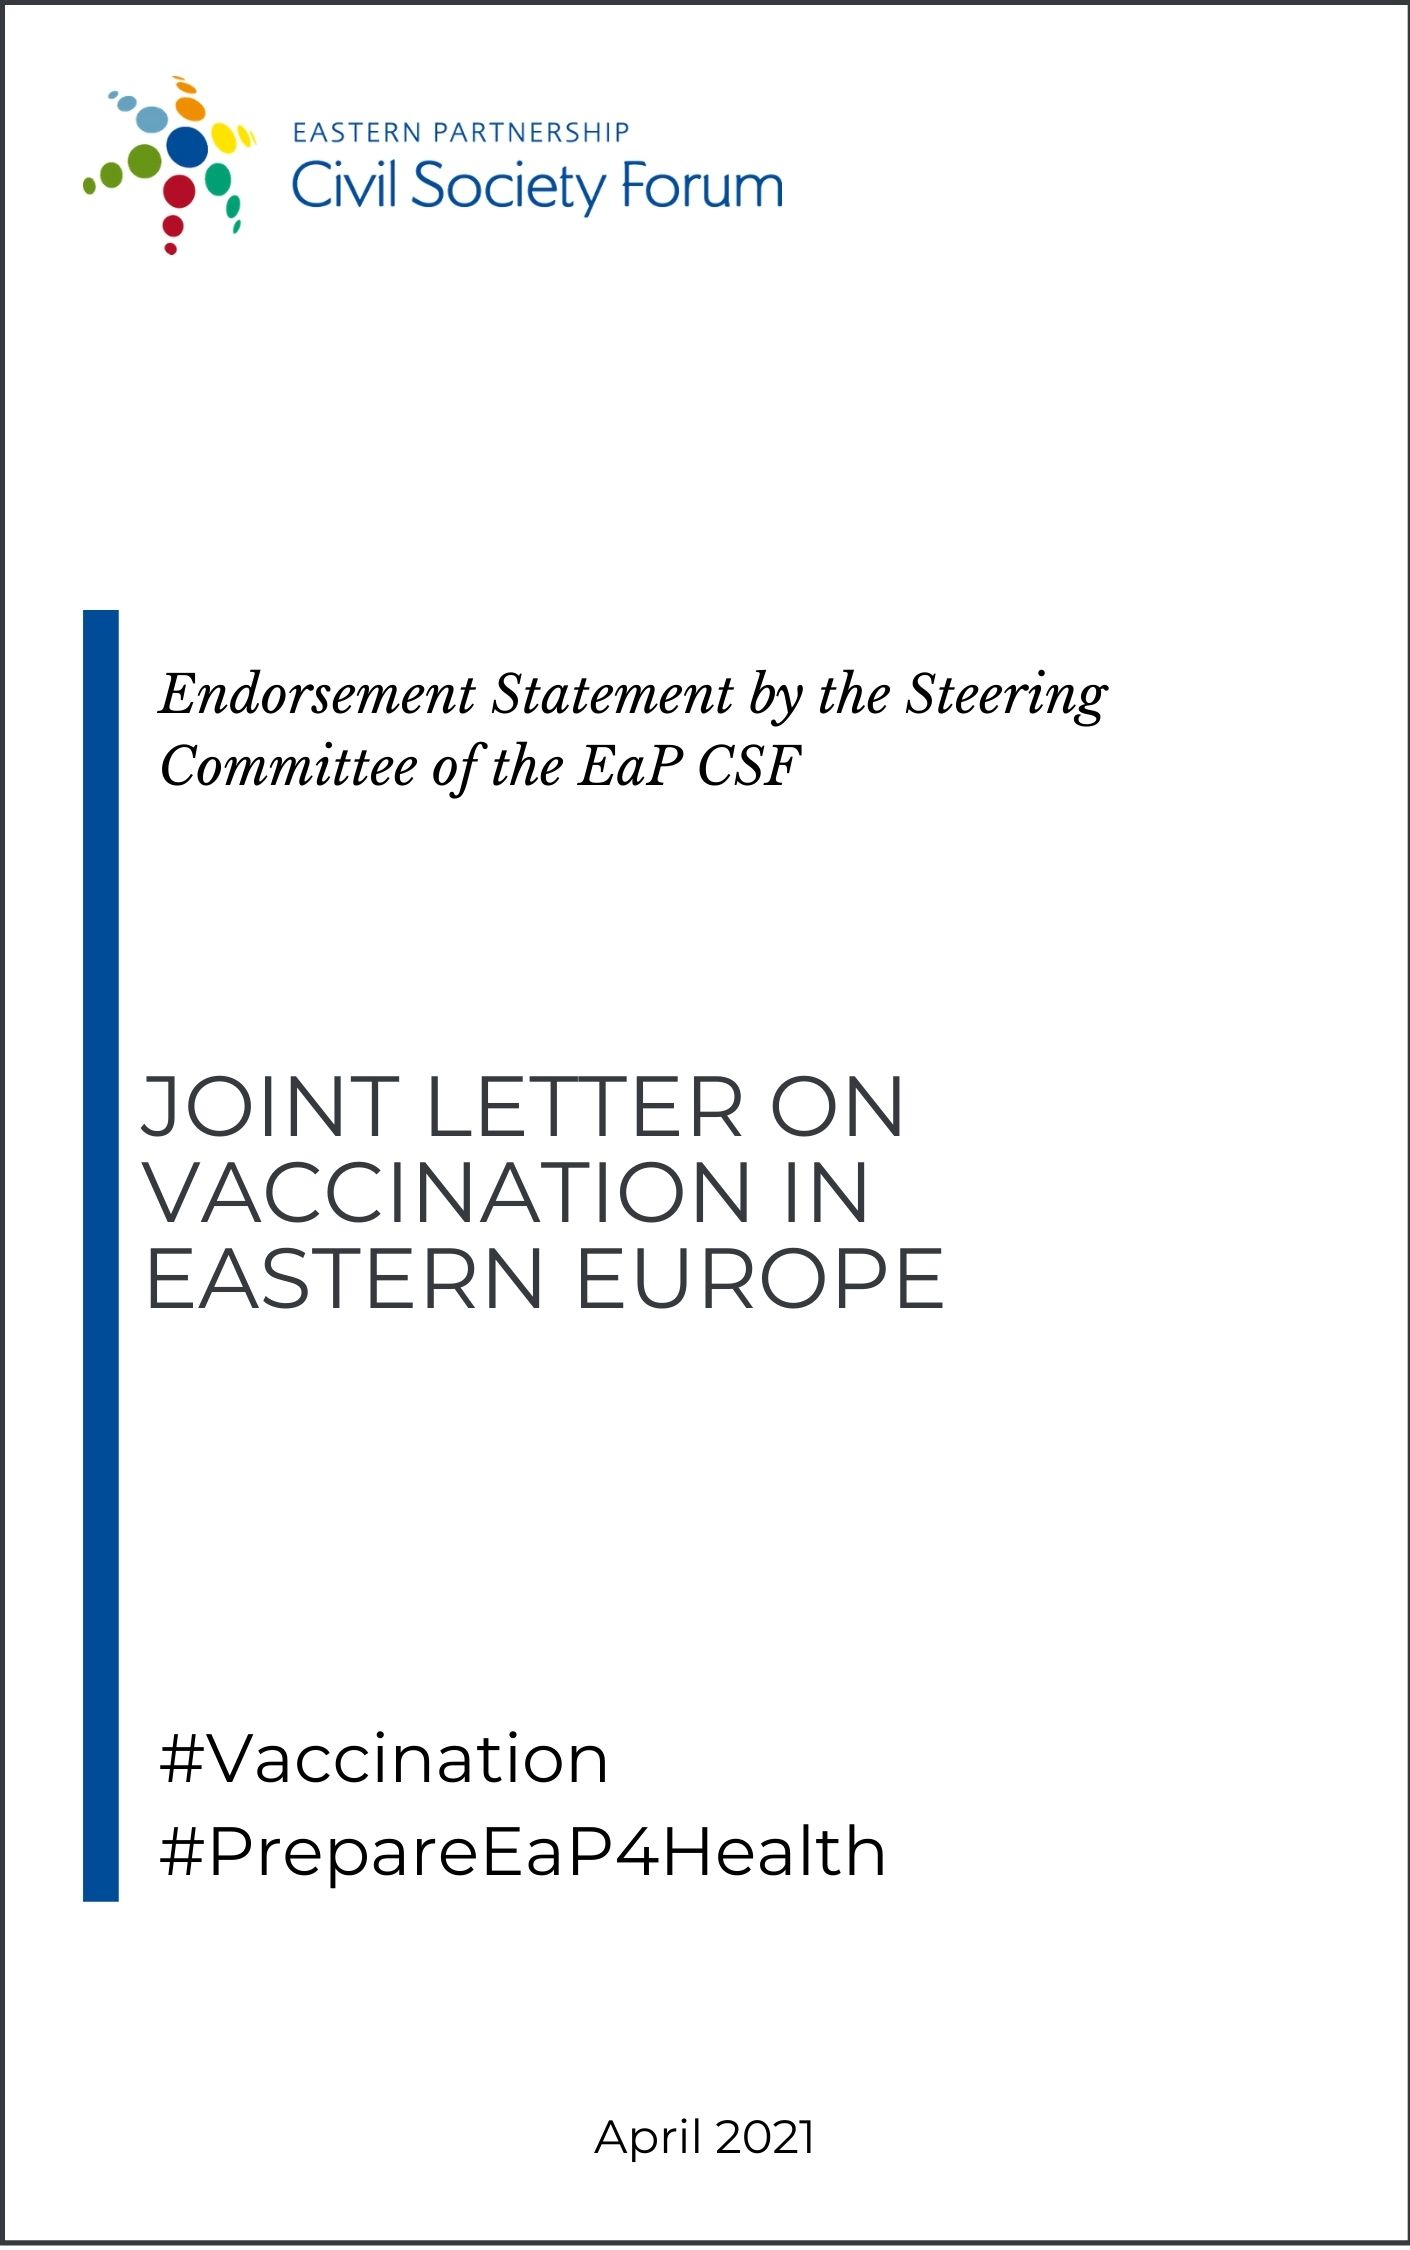 Endorsement statement by the Steering Committee for the joint letter on vaccination in EaP